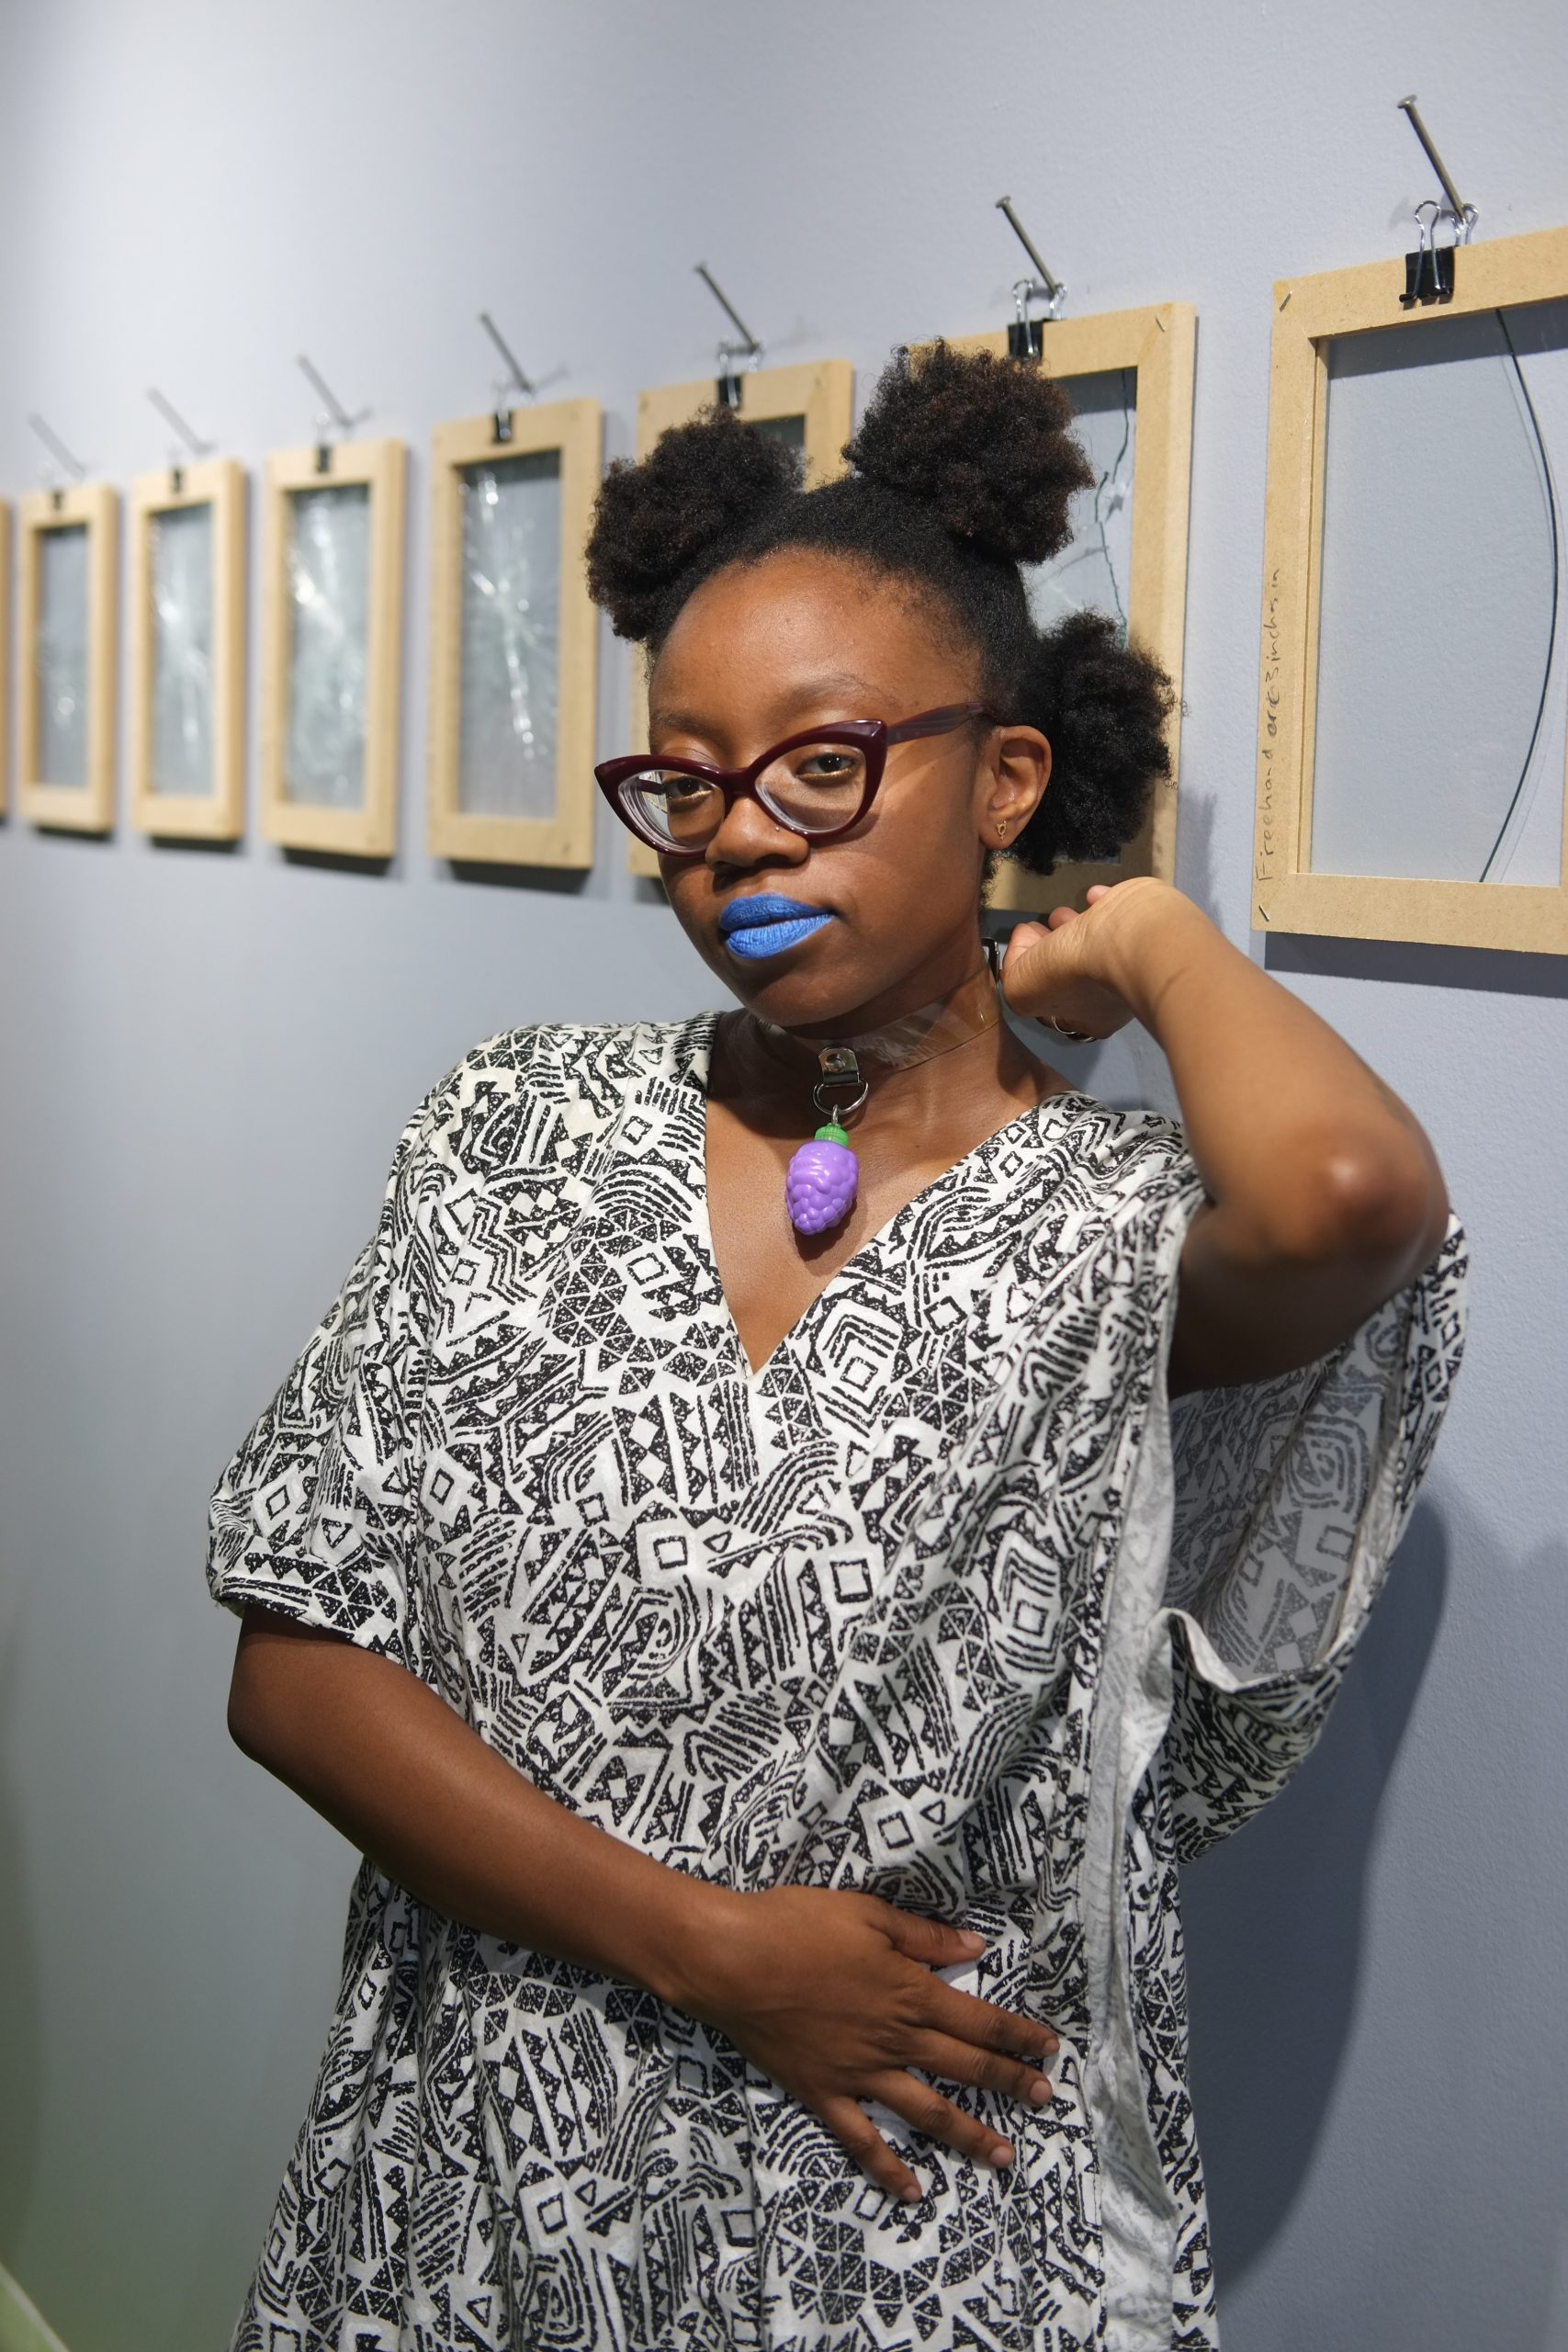 Aniysa's collective promotes free and open-to-the-public workshops focused on black femininities.